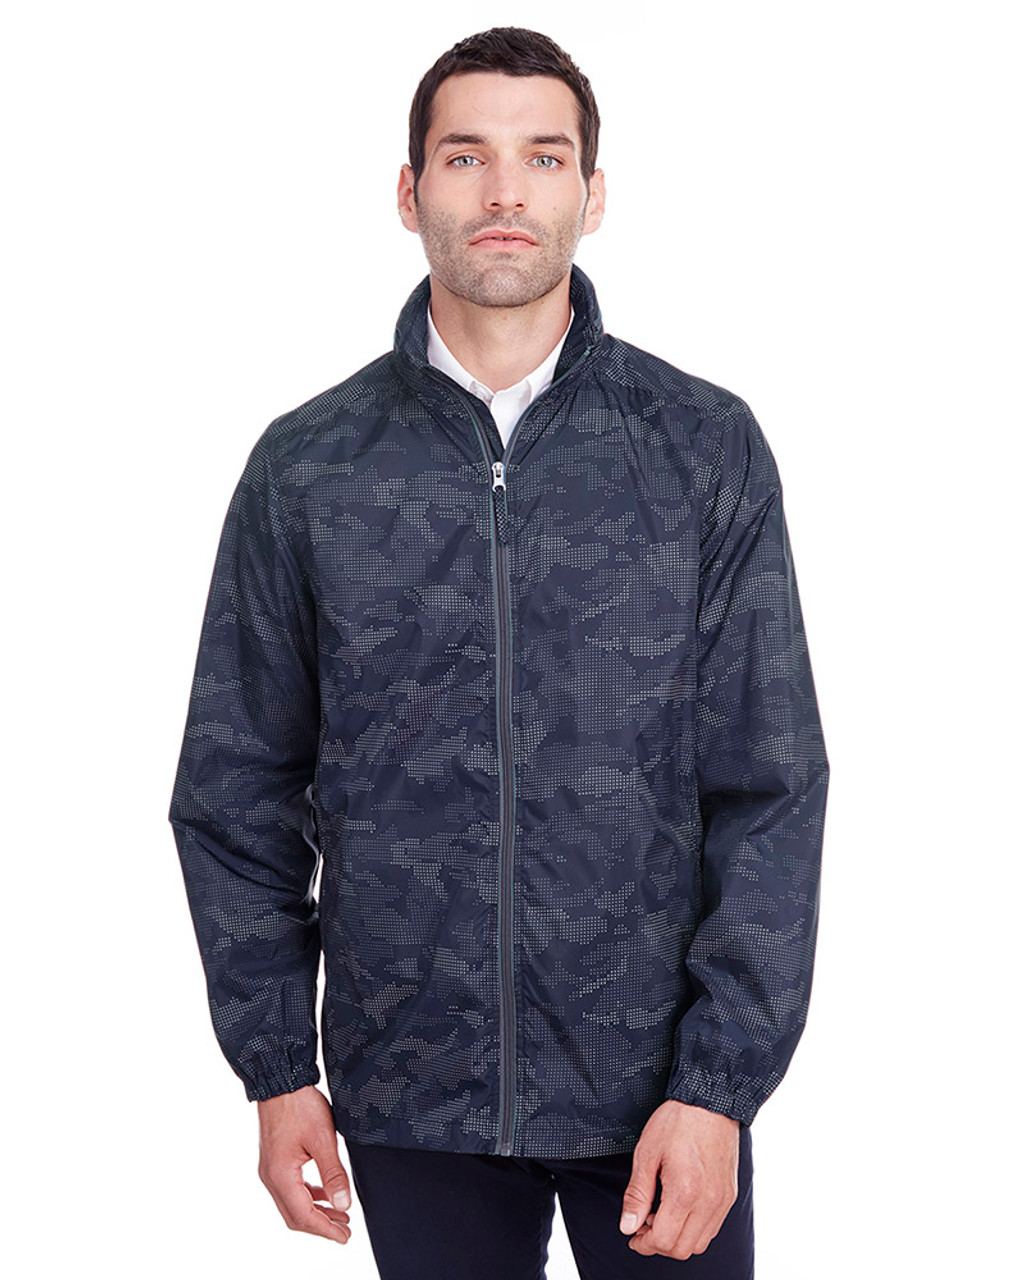 Classic Navy/Carbon - NE711 North End Men's Rotate Reflective Jacket   Blankclothing.ca